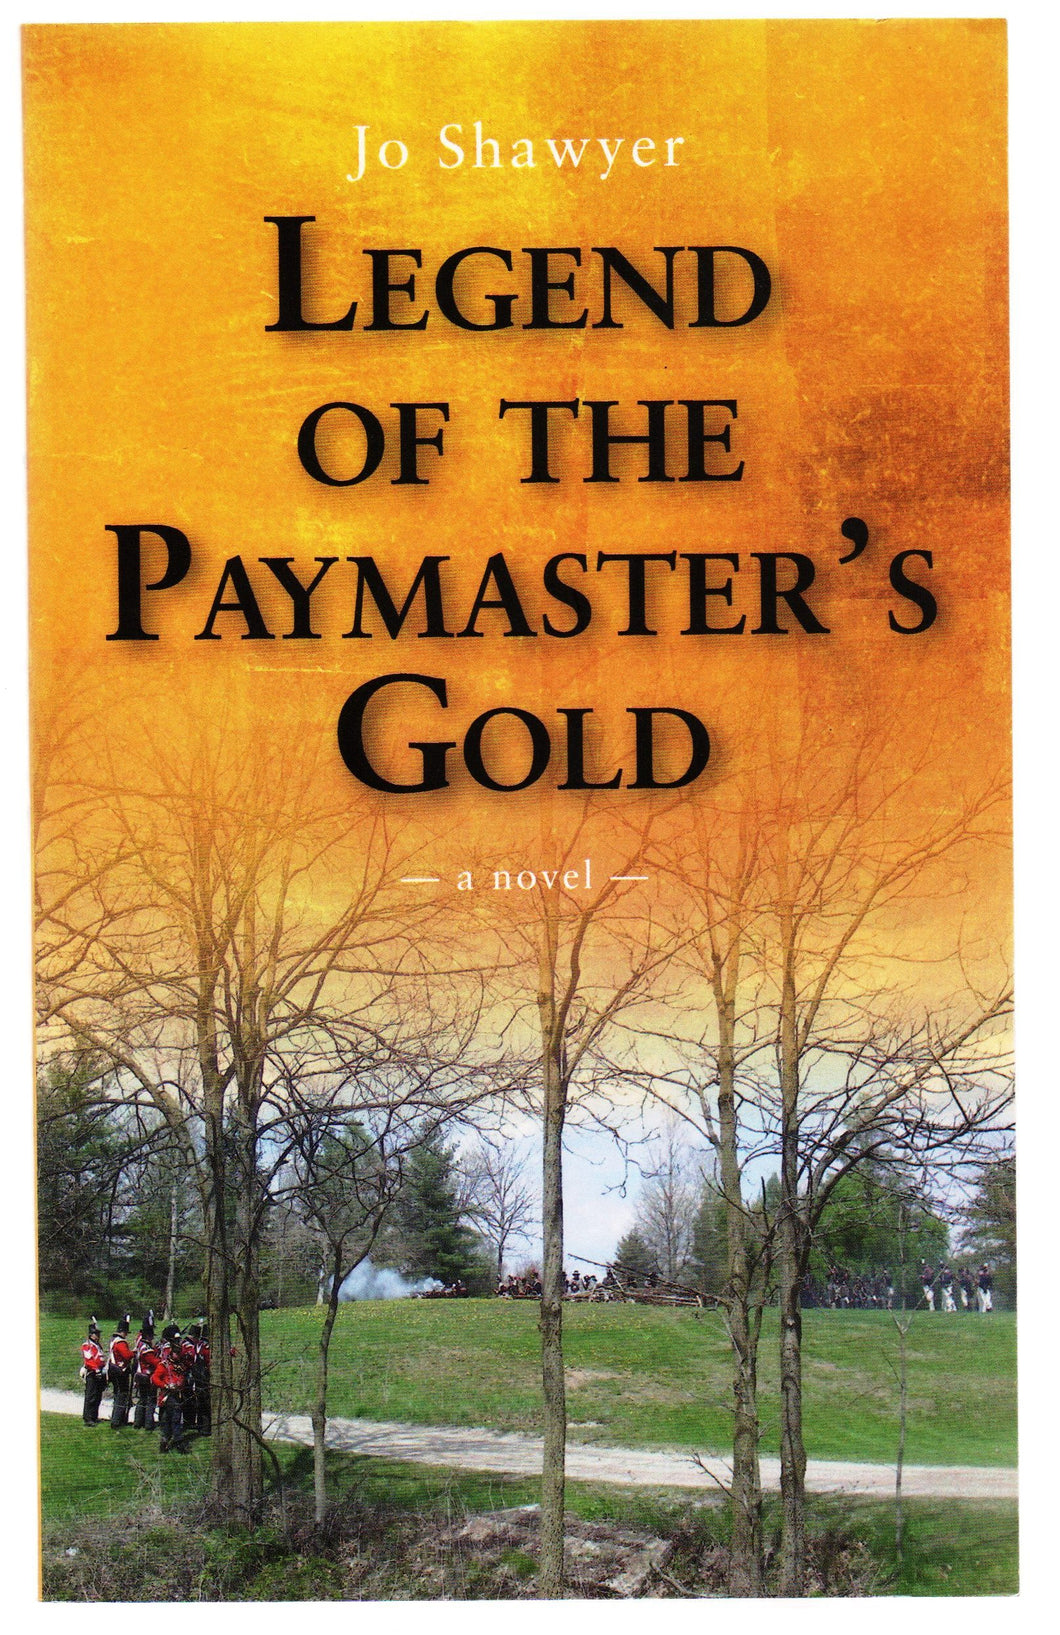 Legend of the Paymaster's Gold: a novel